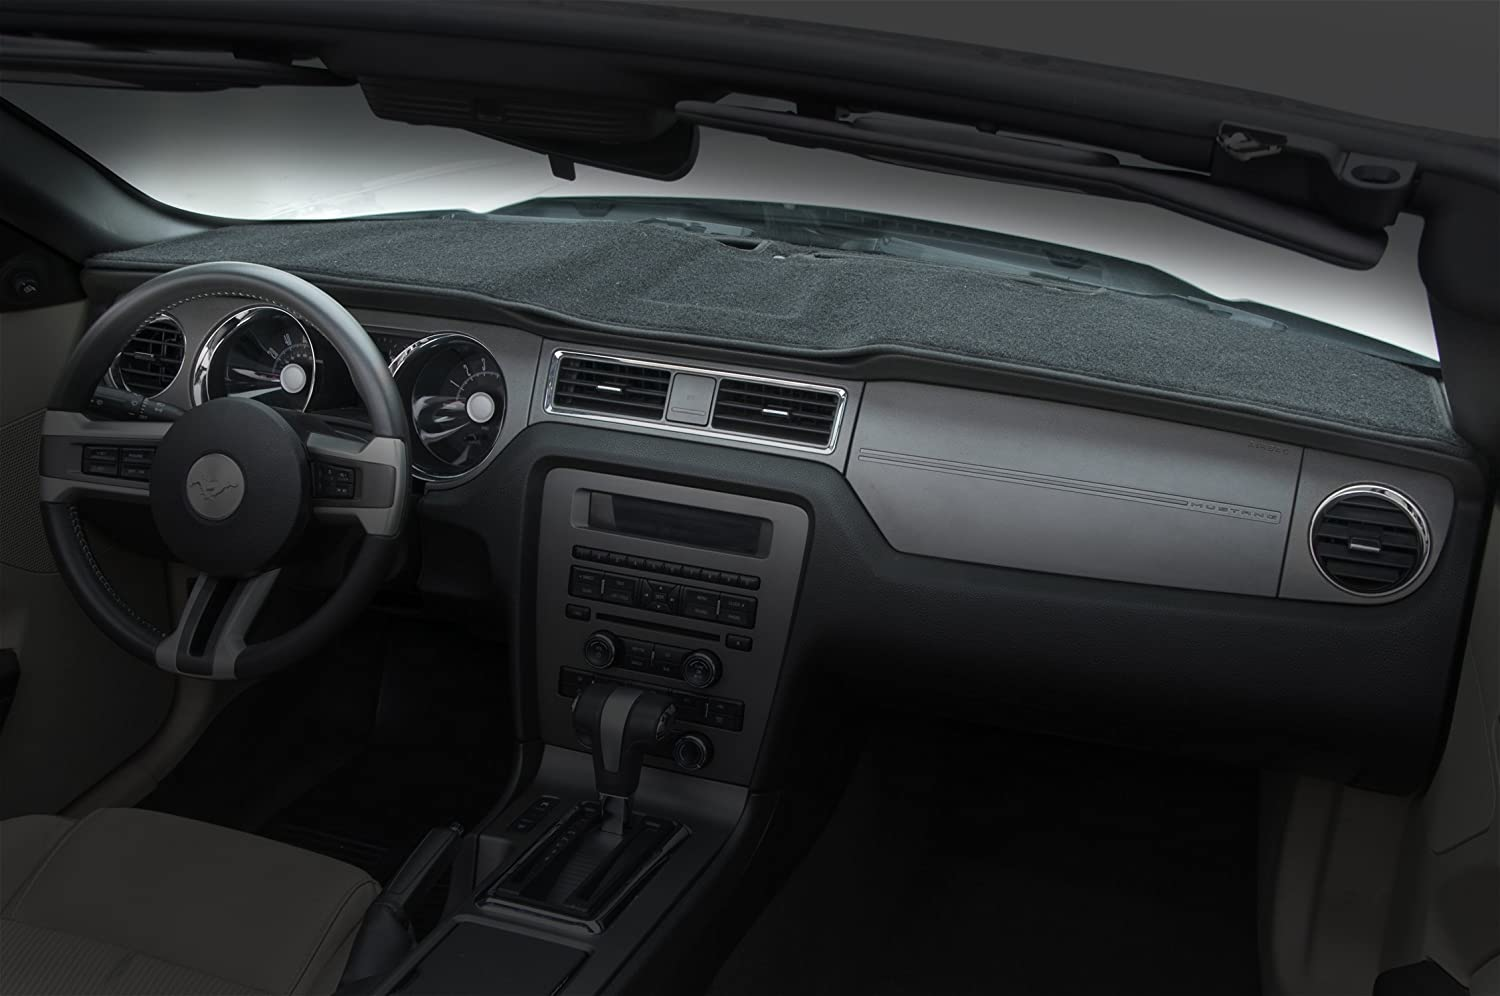 Coverking Custom Fit Dashboard Cover for Select RAM Models - Poly Carpet (Charcoal)